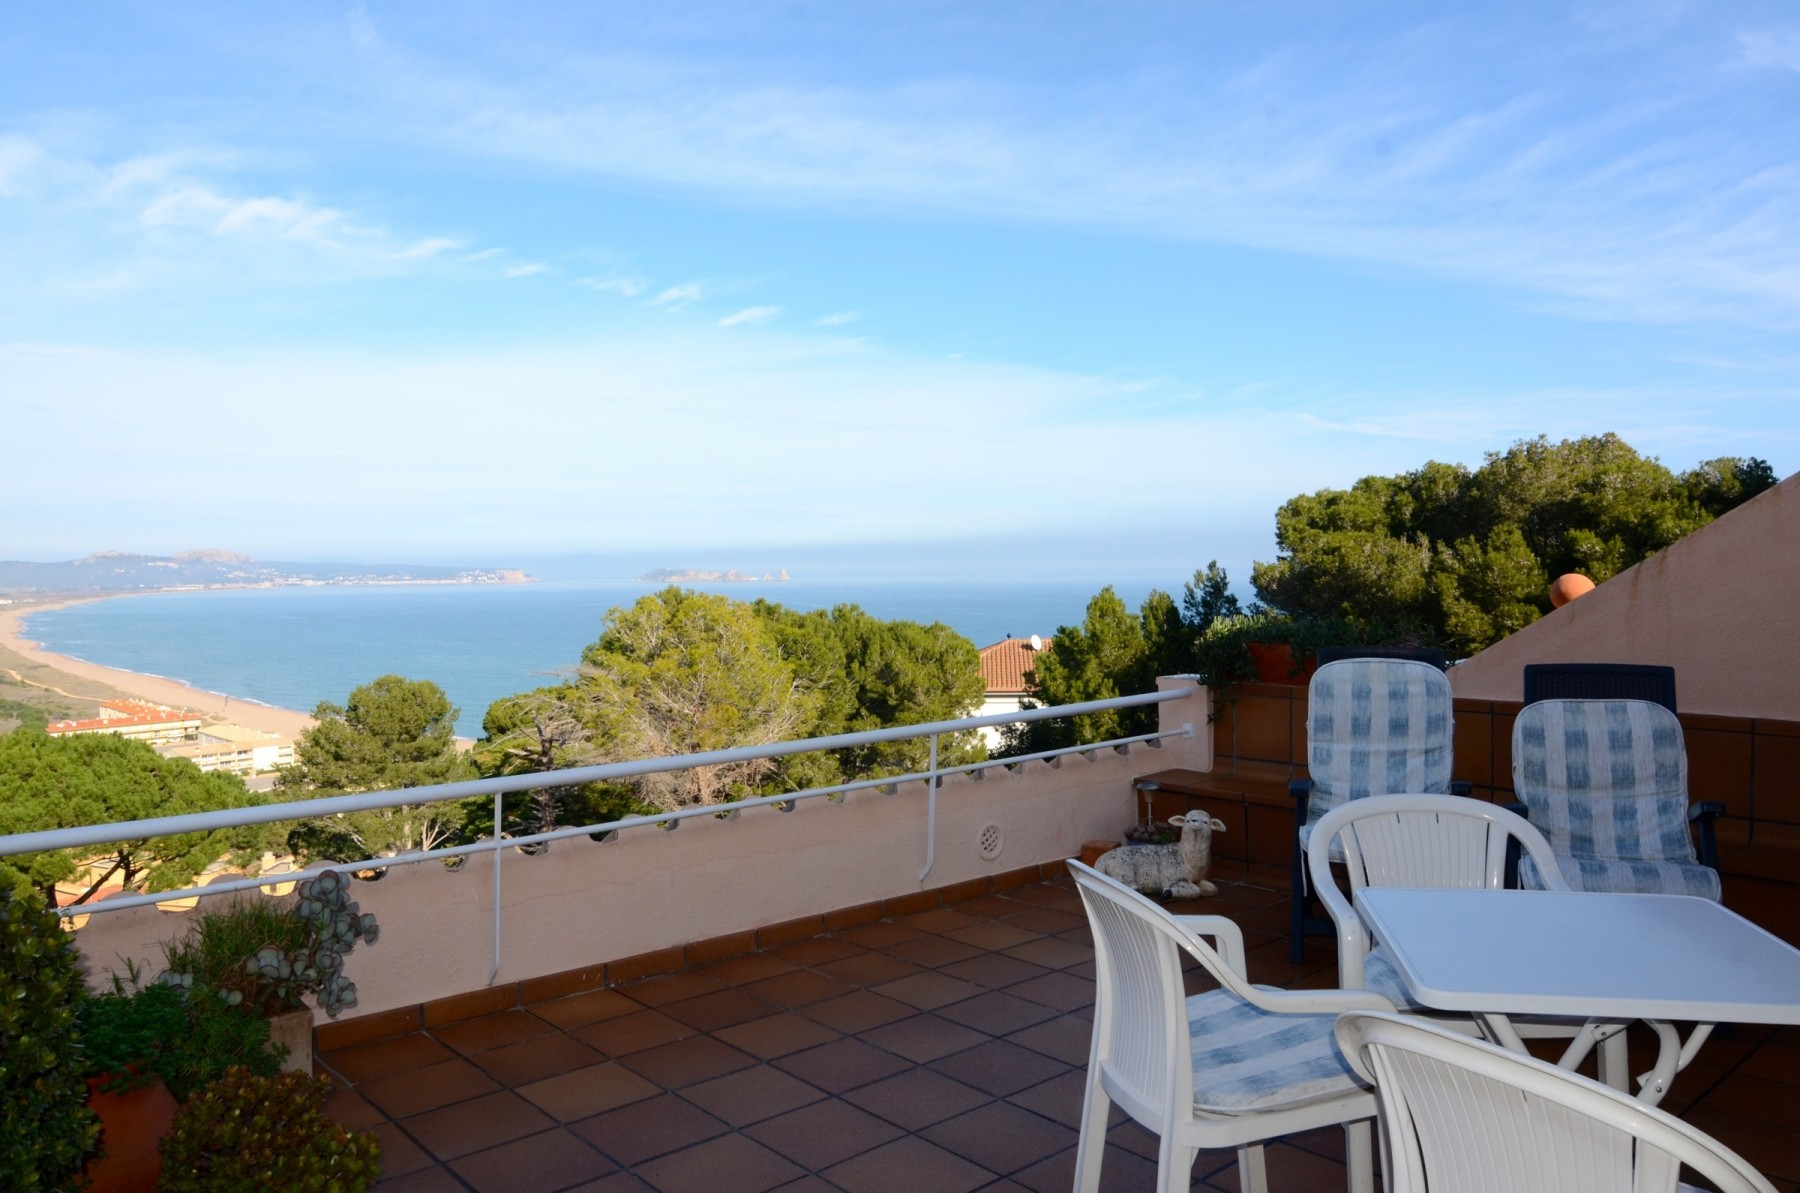 AVA SENIA 3D for 8 guests in Begur, Spain